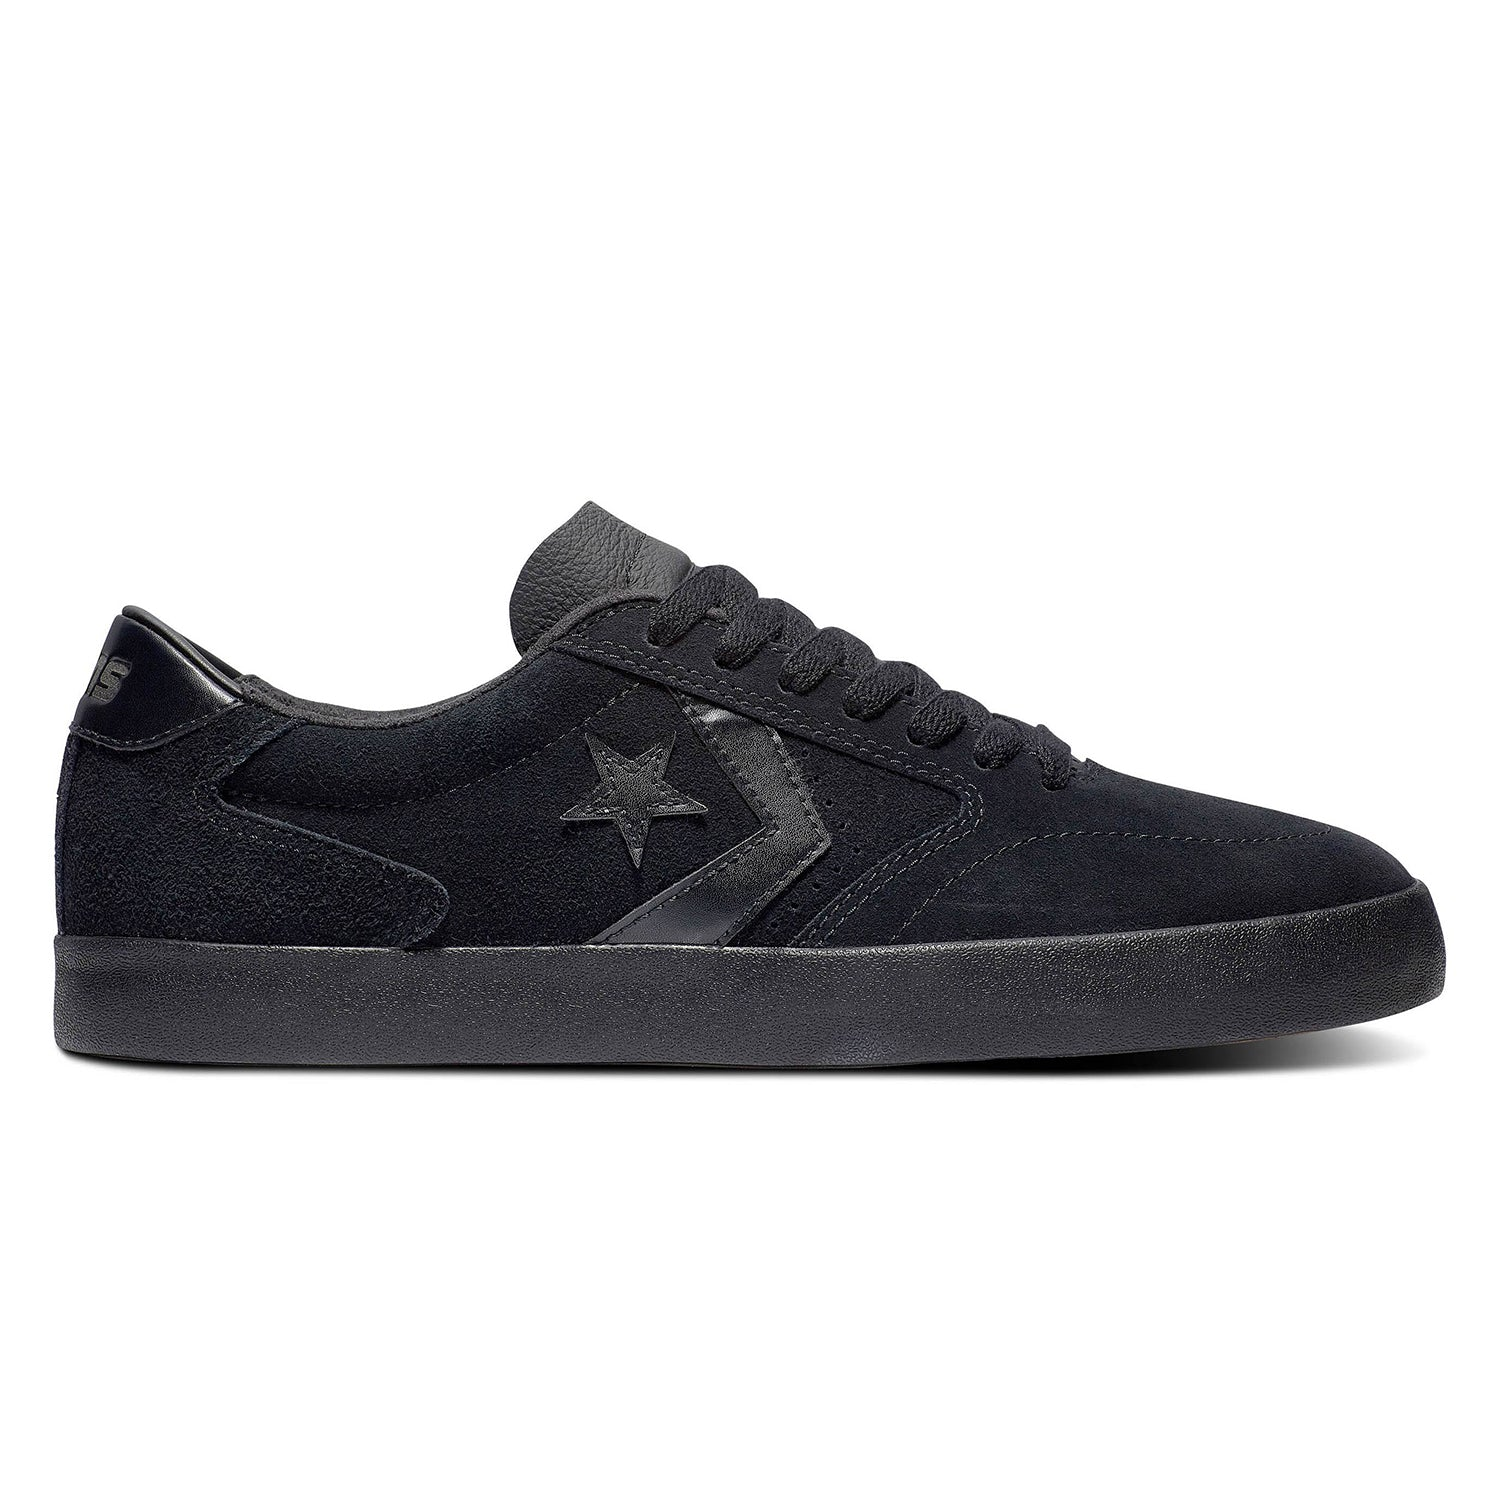 Converse CONS Checkpoint Pro Black/Black